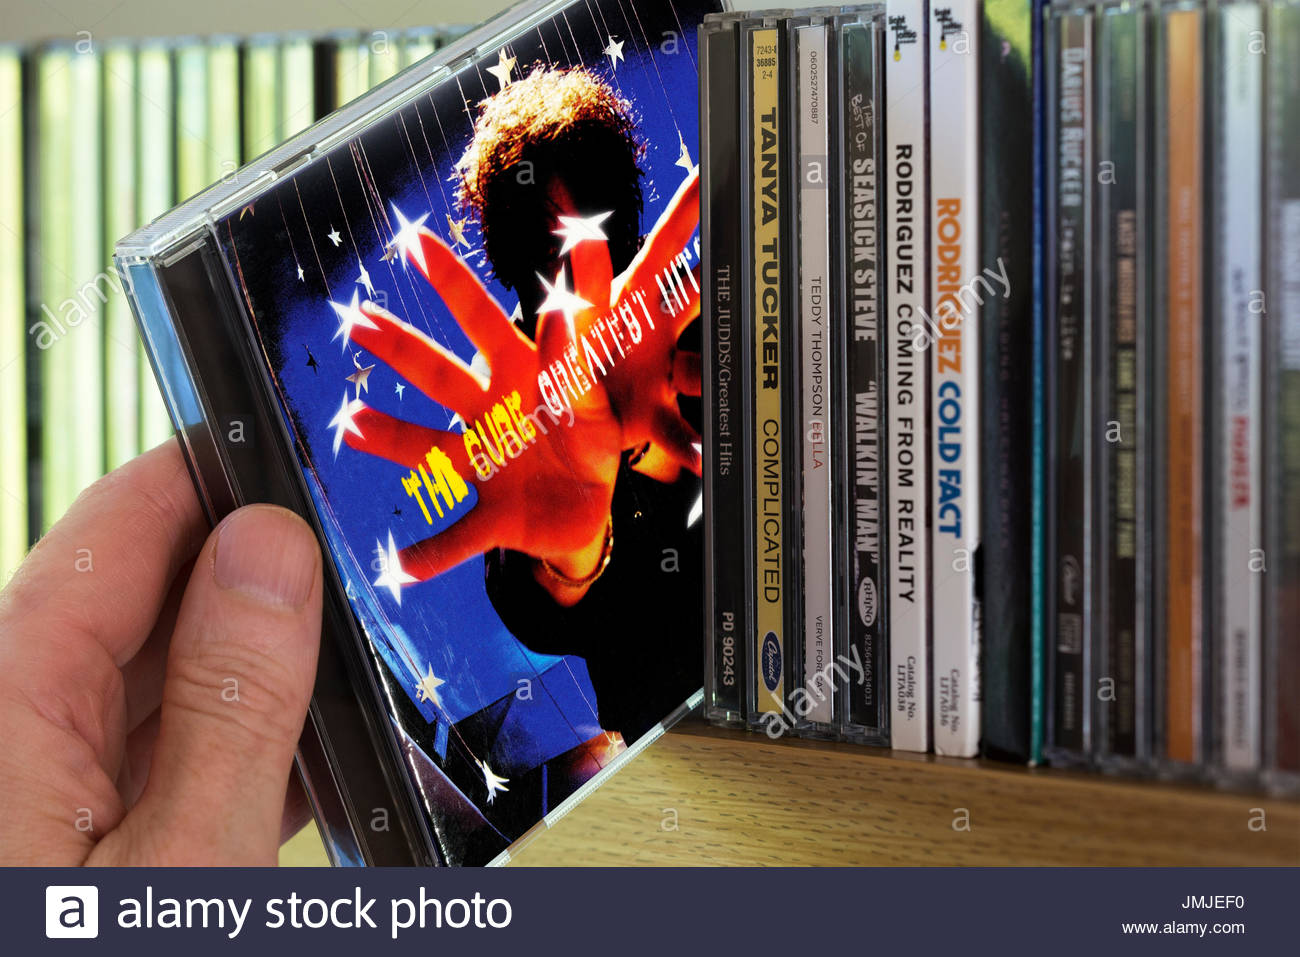 Our Greatest Hits Stock Photos Amp Our Greatest Hits Stock